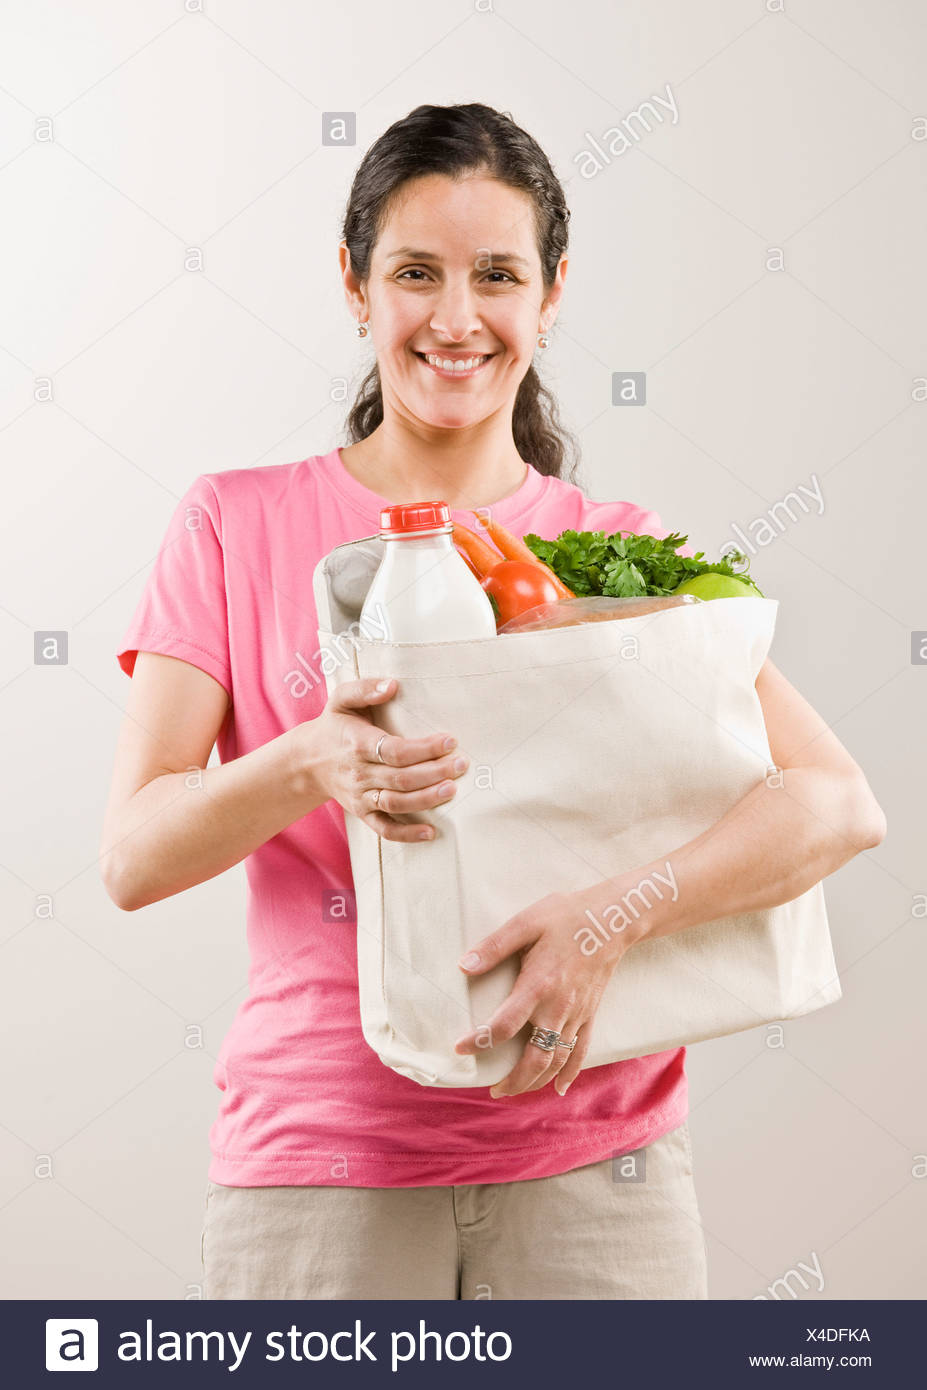 Woman carrying bag of groceries - Stock Image